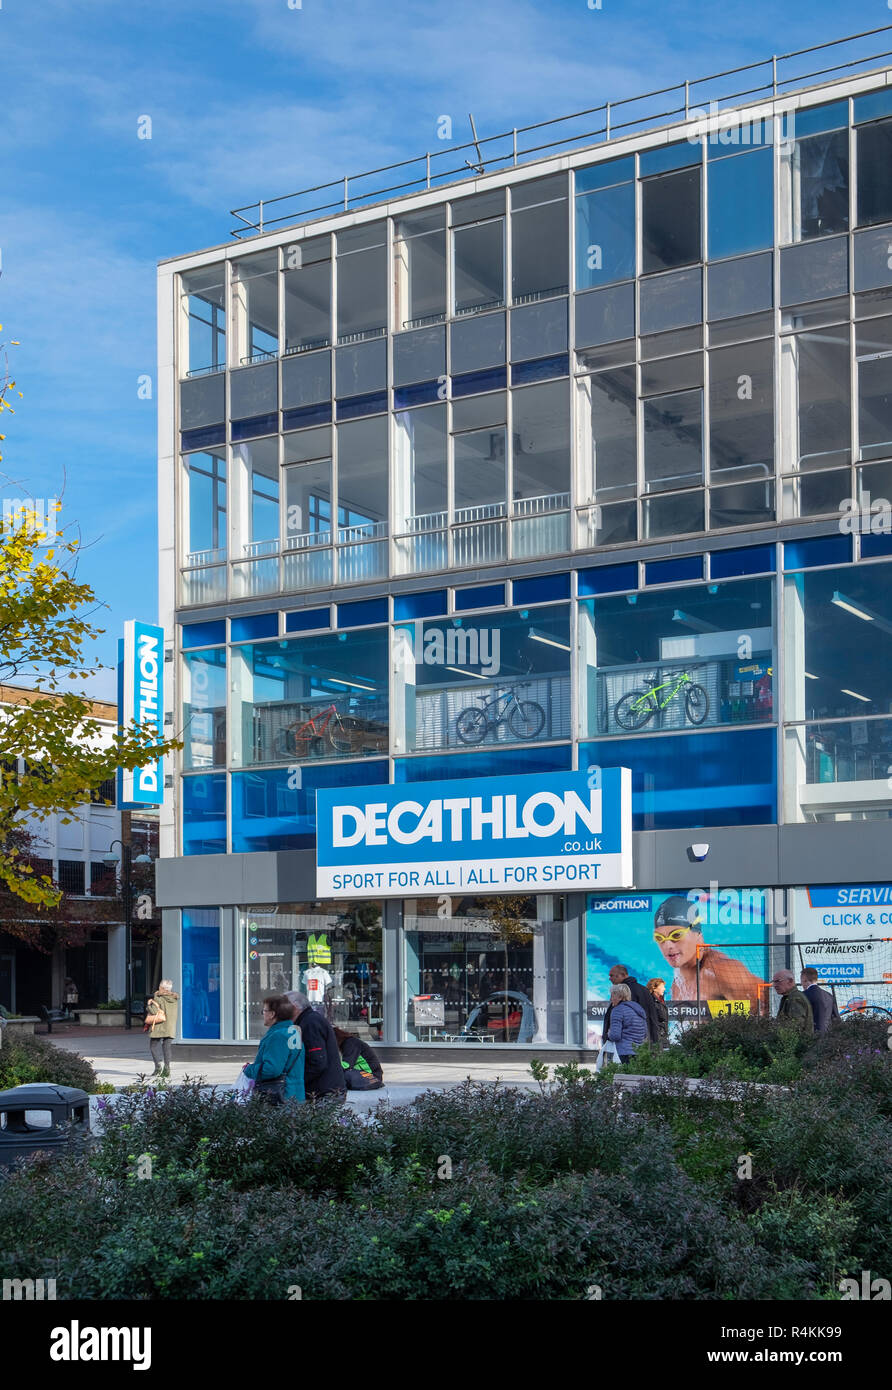 Decathlon shop front, Crawley, Sussex - Stock Image